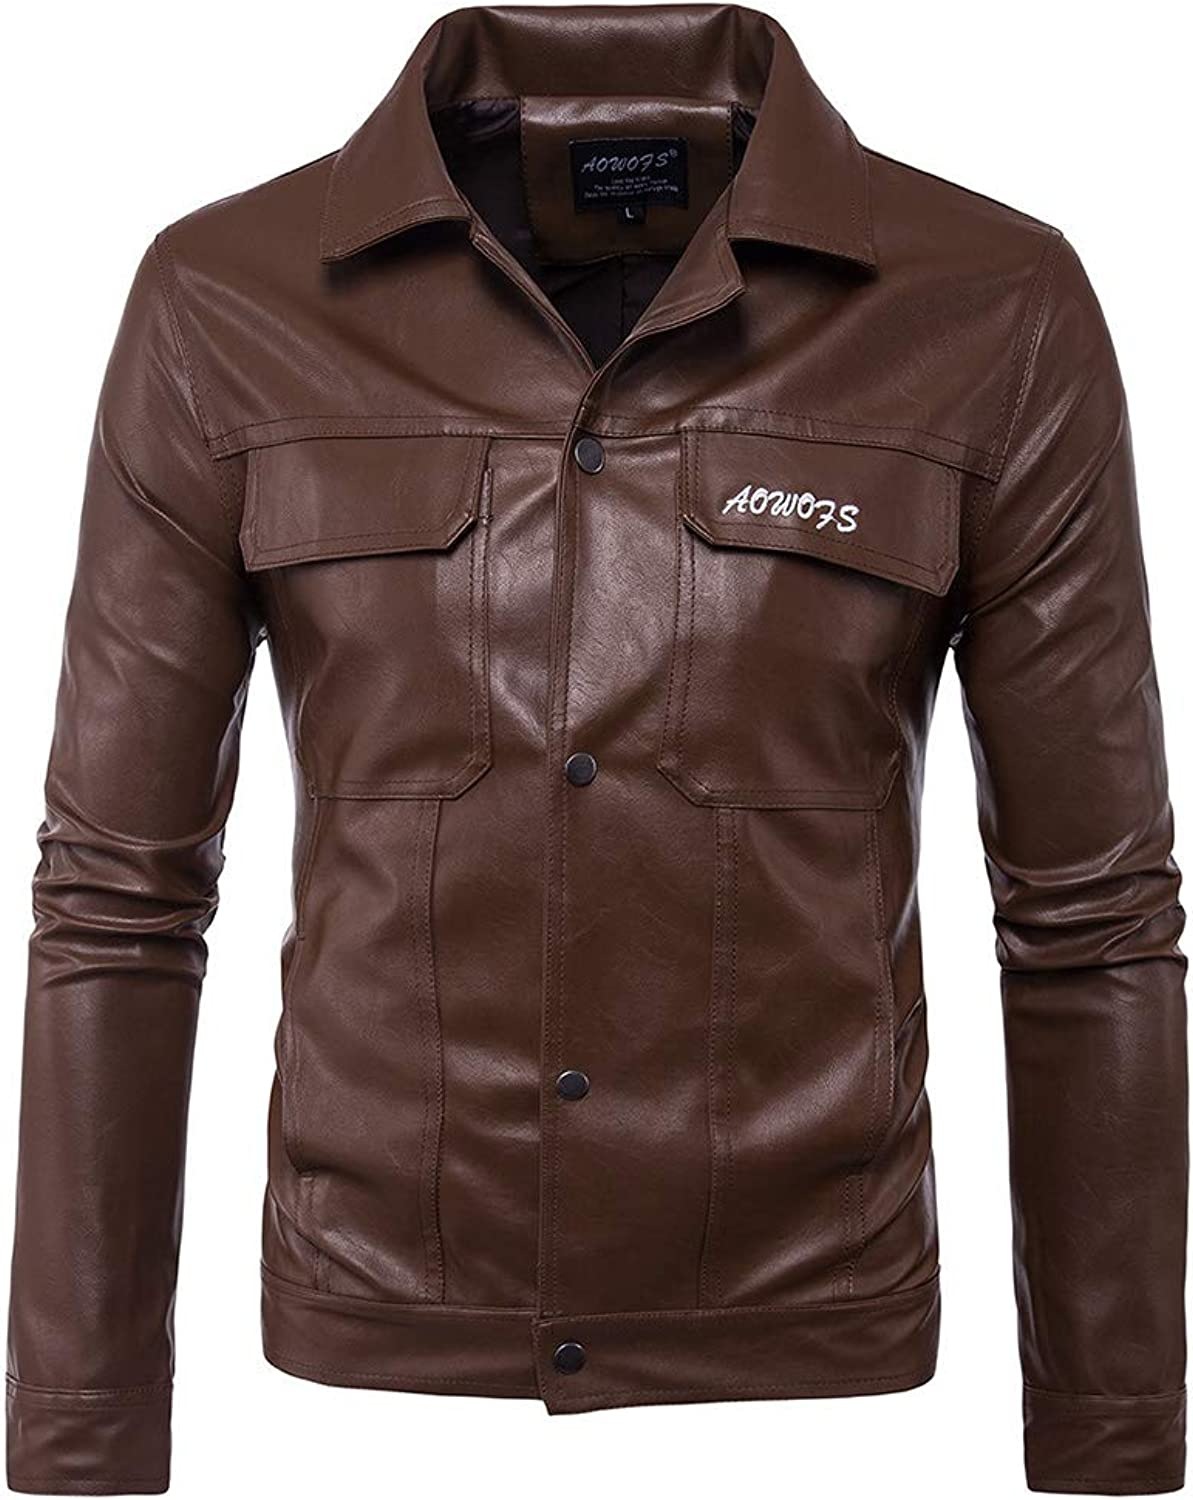 Men's Black and Brown Faux Leather Biker Jacket with Letter Embroidery